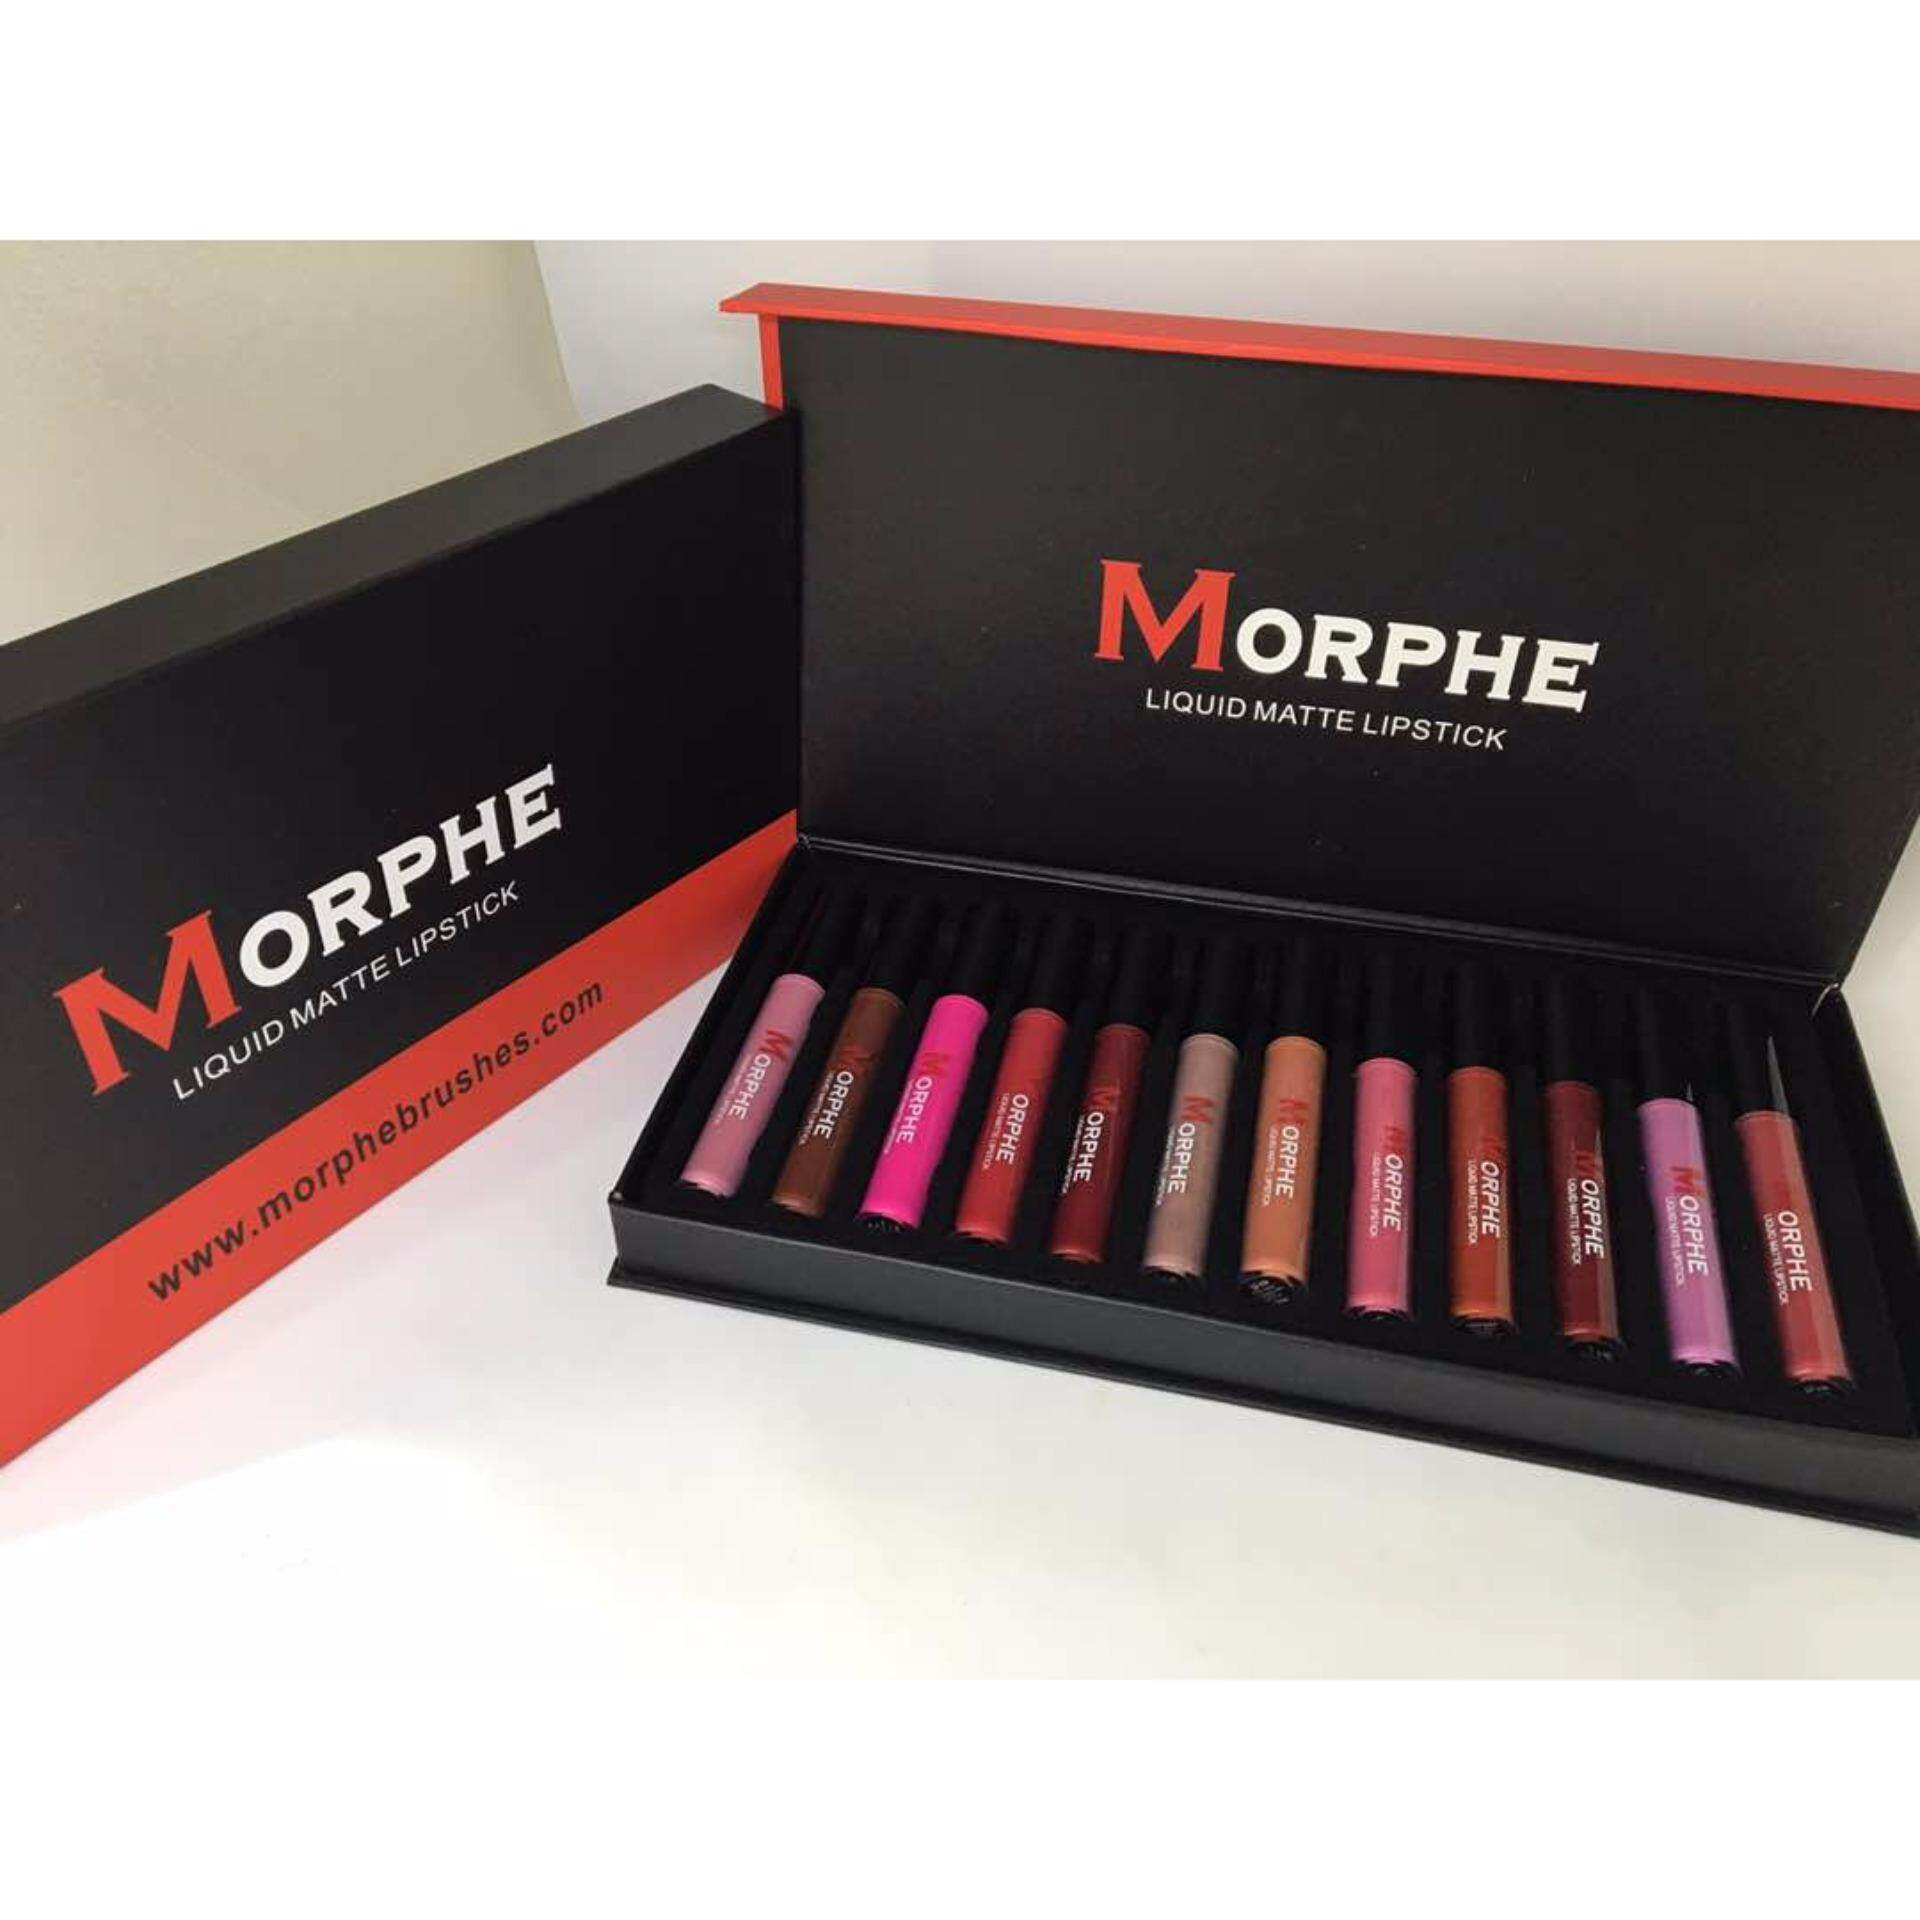 Morphe Liquid Matte Lipstick 12pcs in 1 set